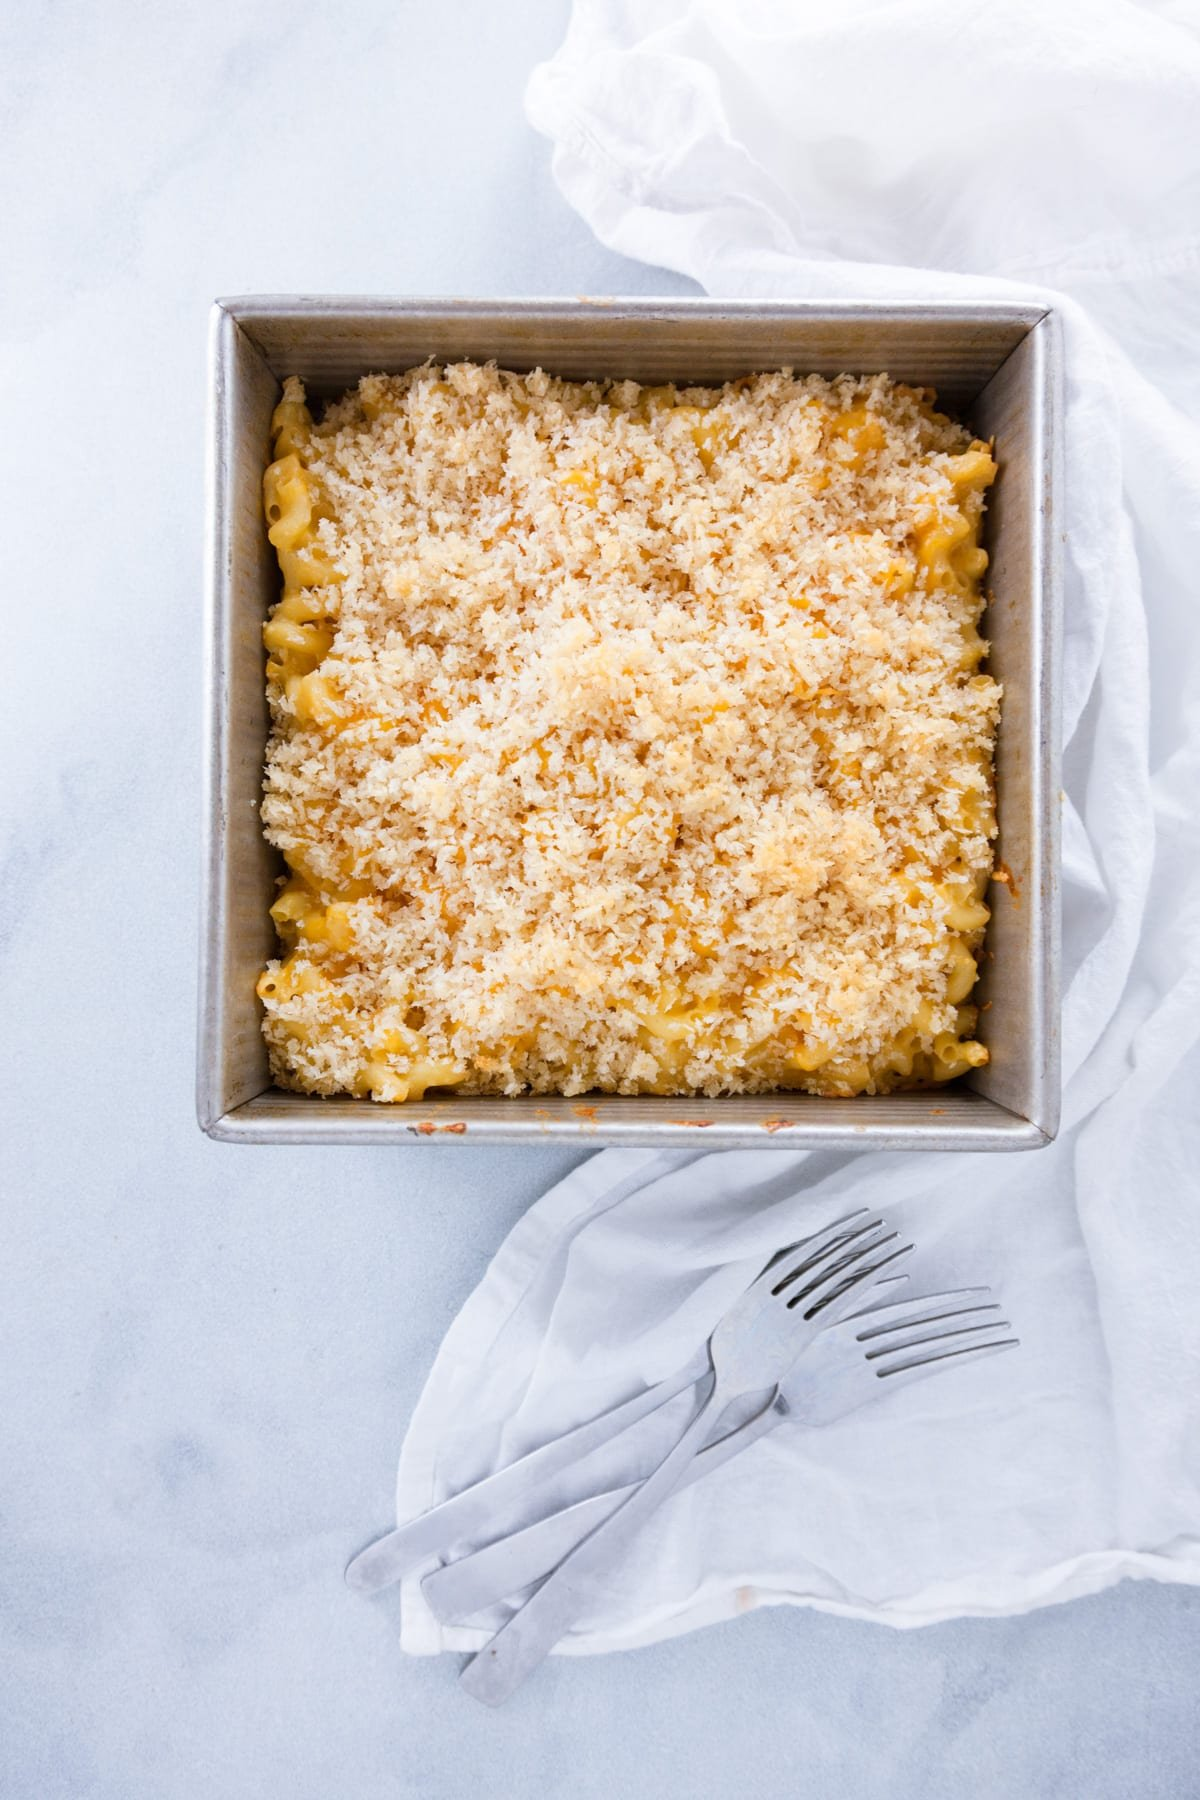 Crumb Topped Baked Mac and Cheese